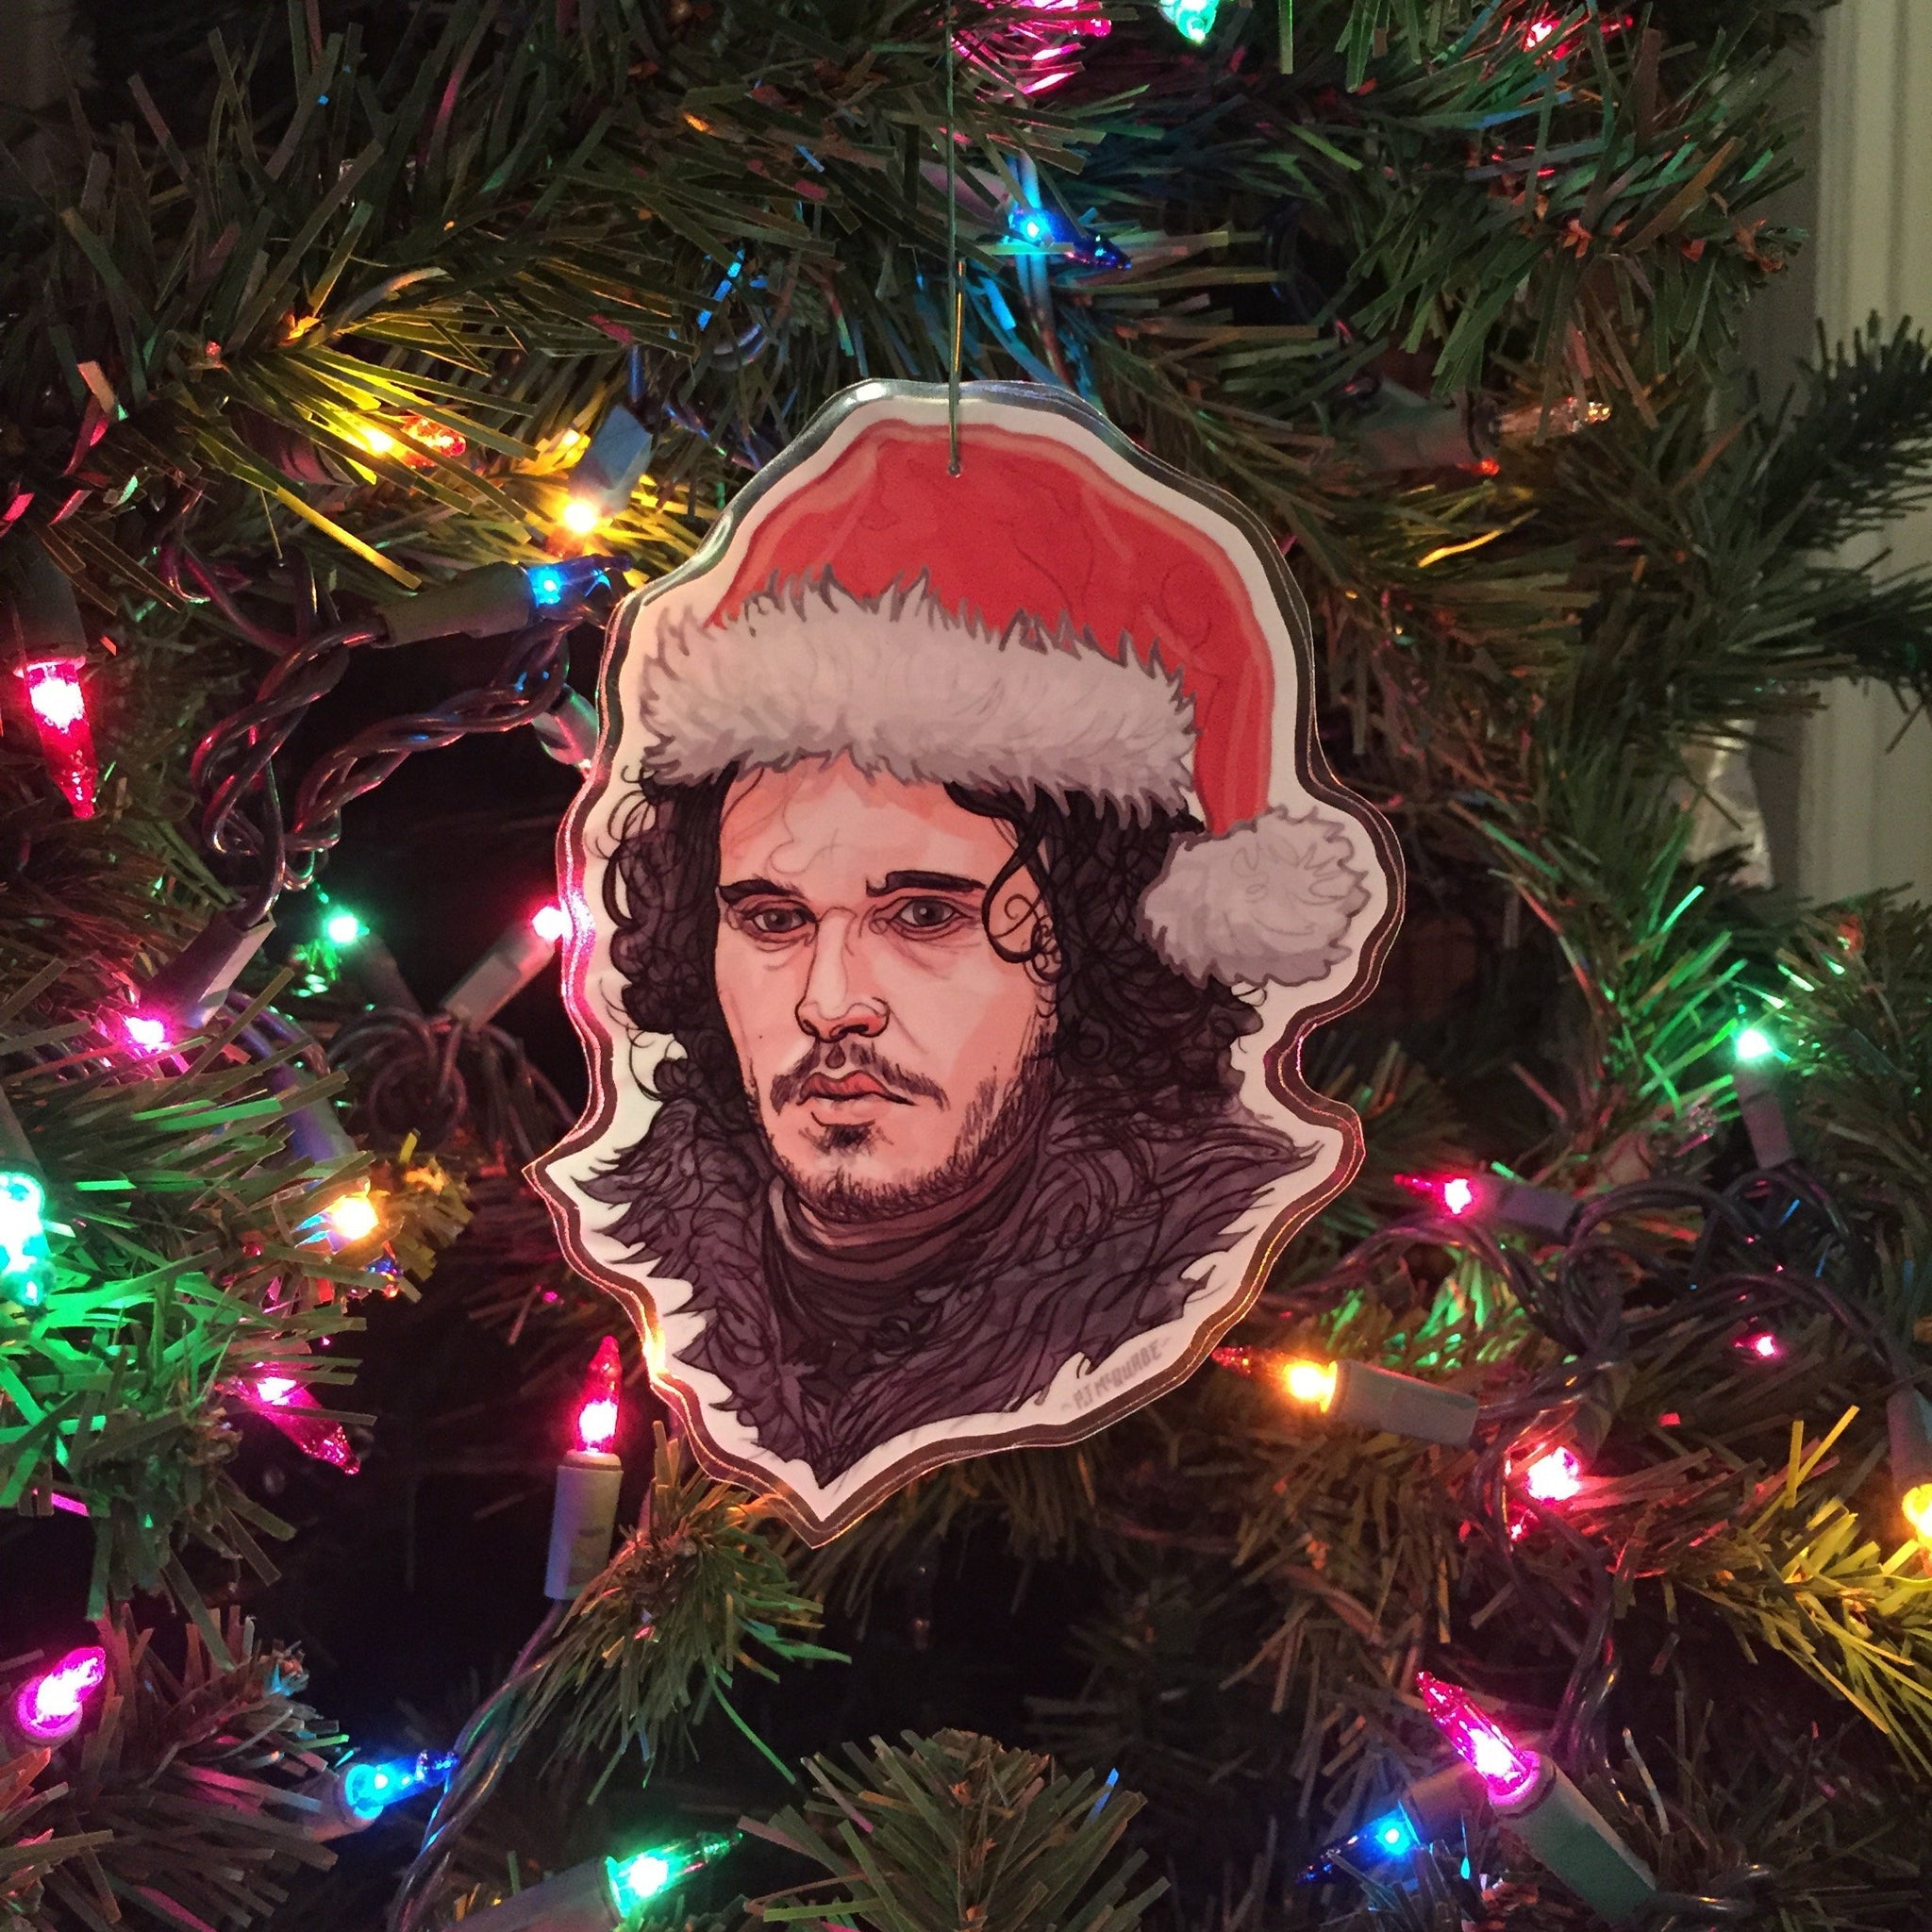 Jon Snow GAME of THRONES Christmas ORNAMENT!